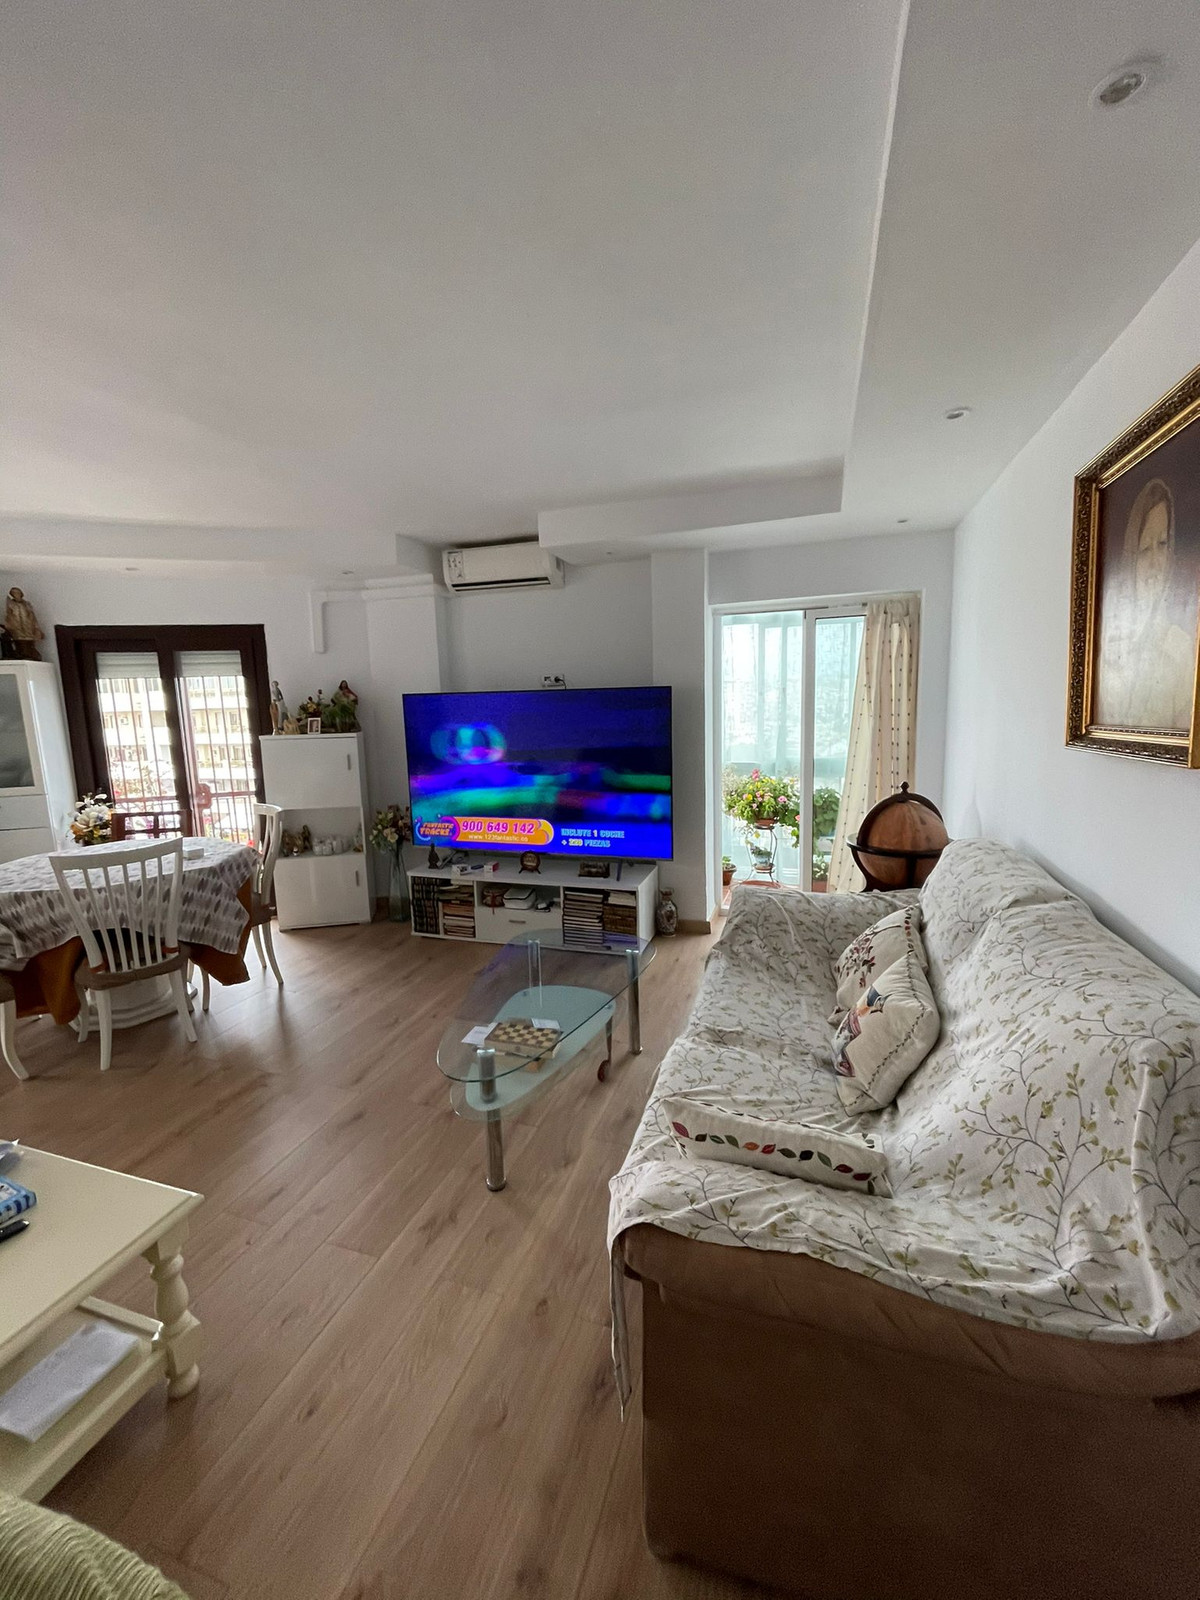 Renovated apartment in the center of Fuengirola. The apartment has 3 bedrooms and 2 bathrooms.  Loca,Spain